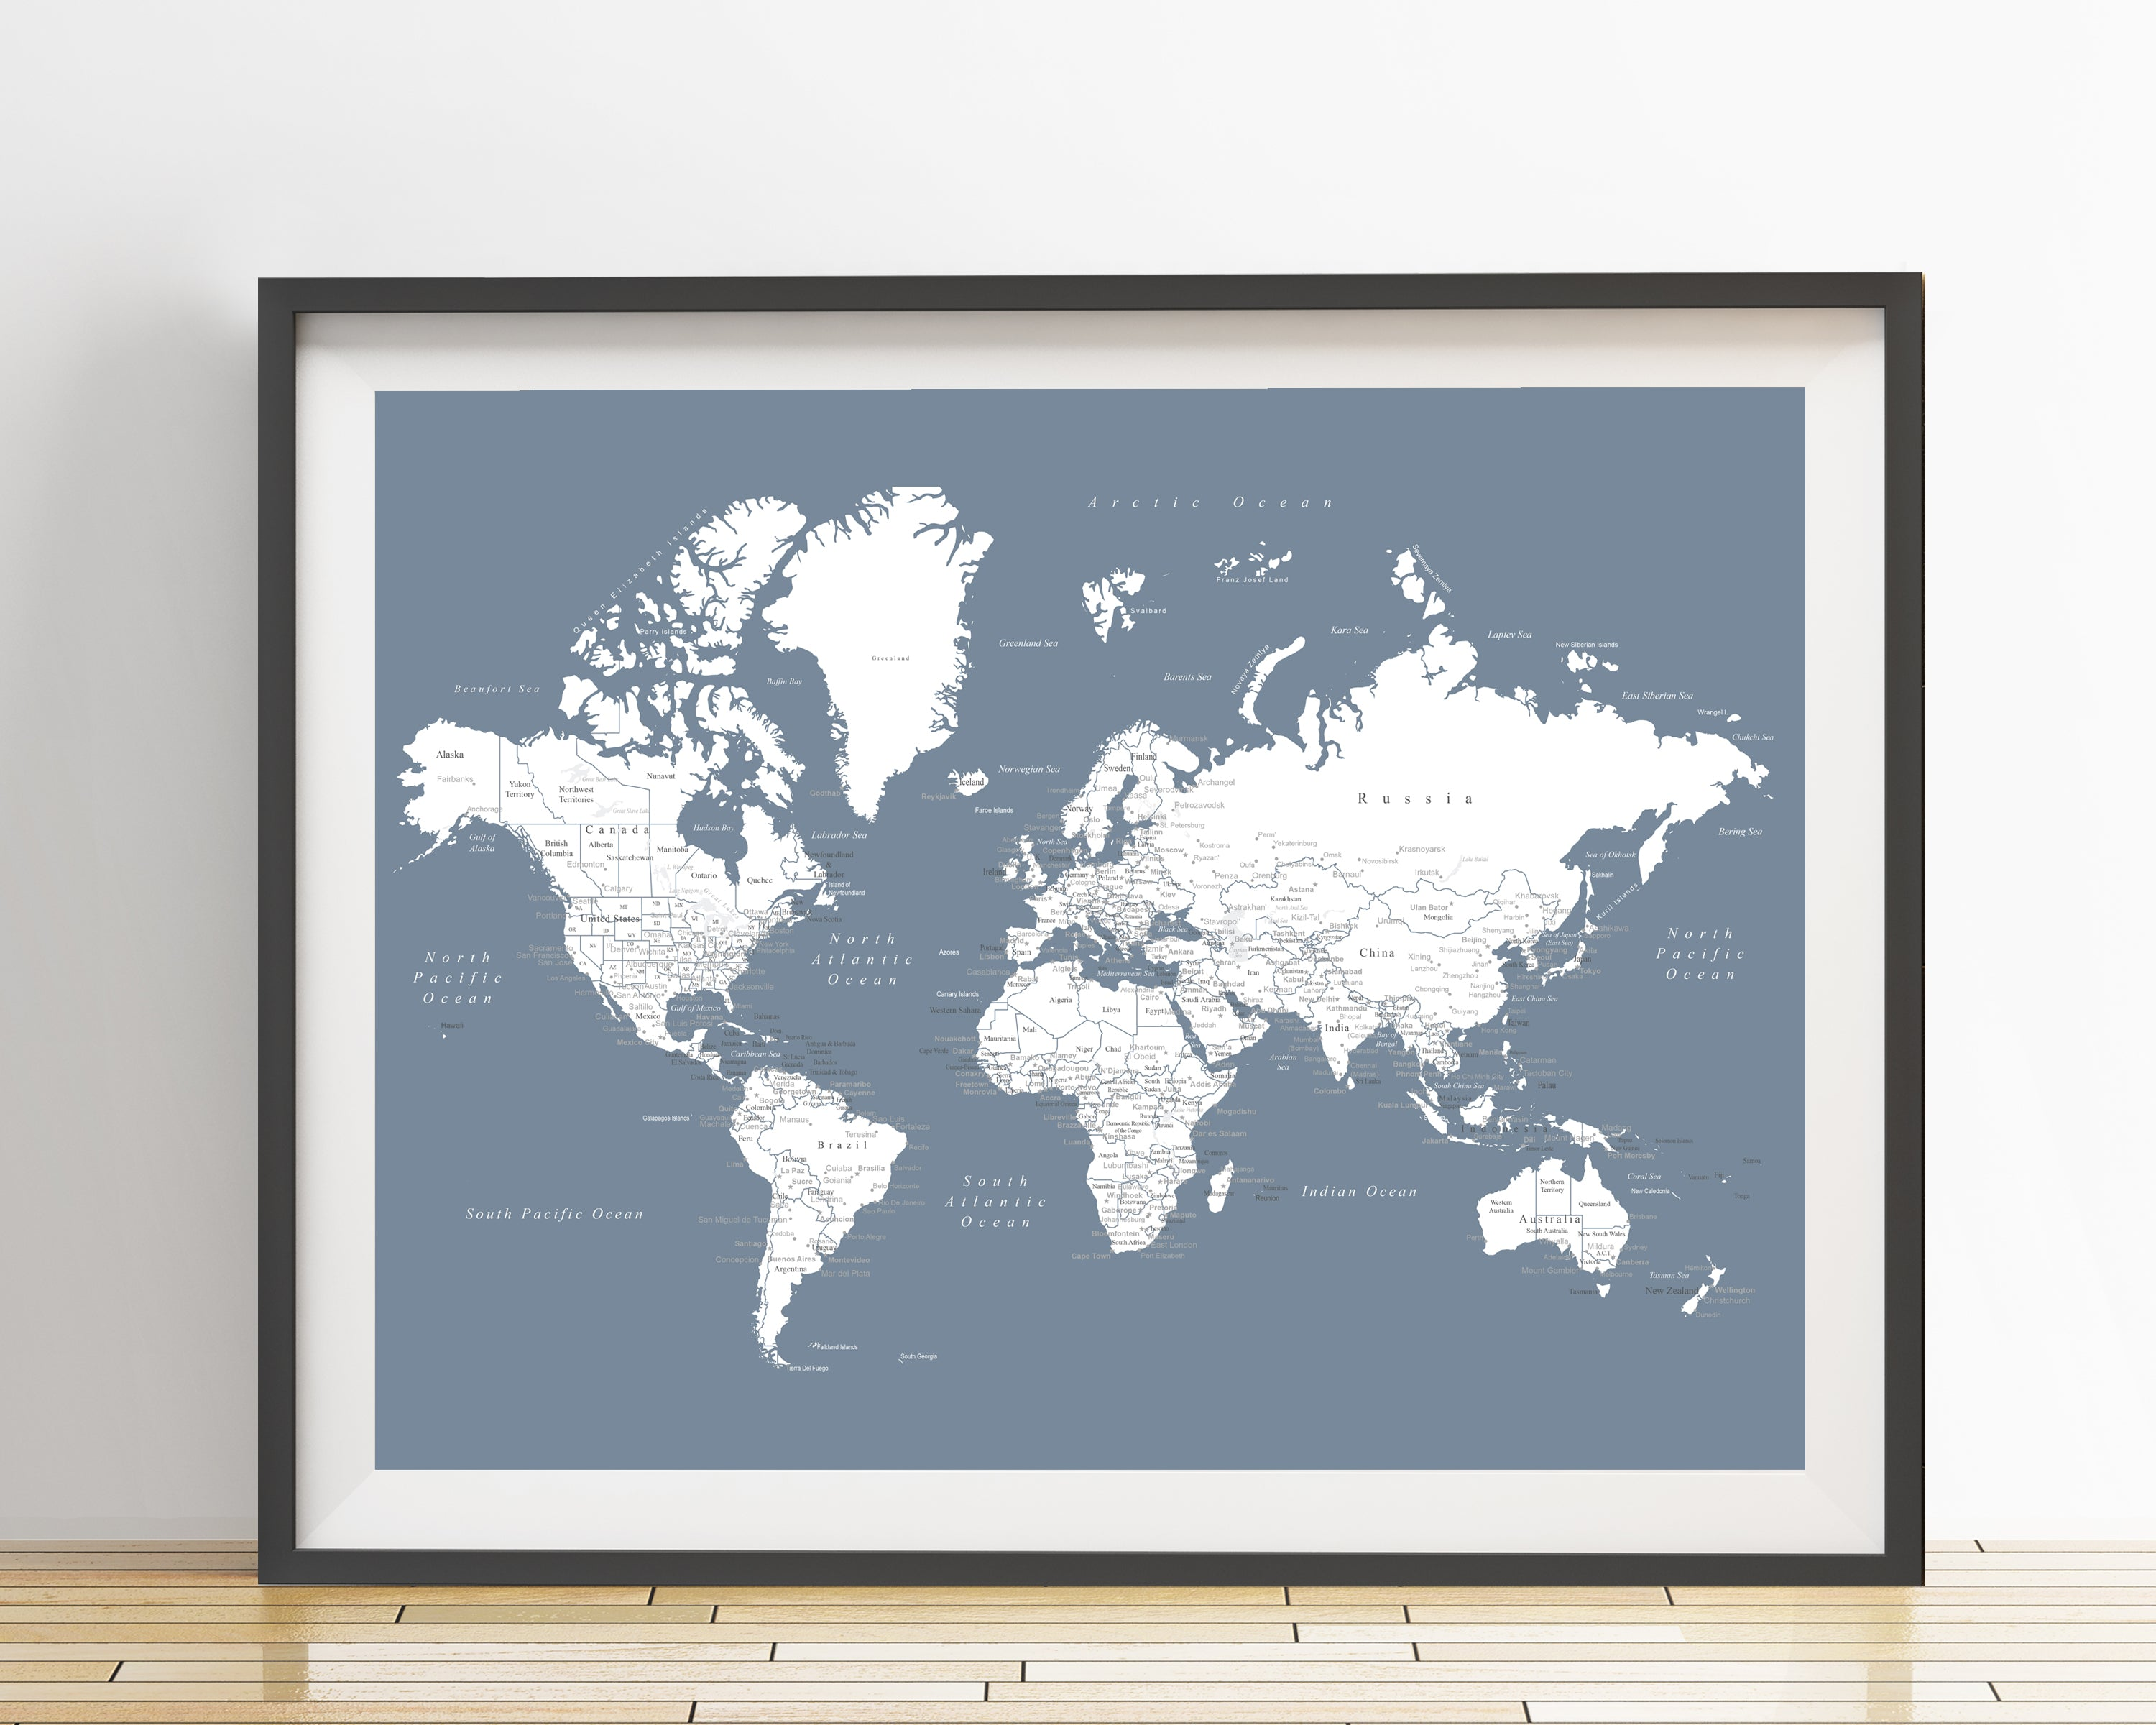 World map poster slate blue an adventure awaits world map poster slate blue gumiabroncs Choice Image